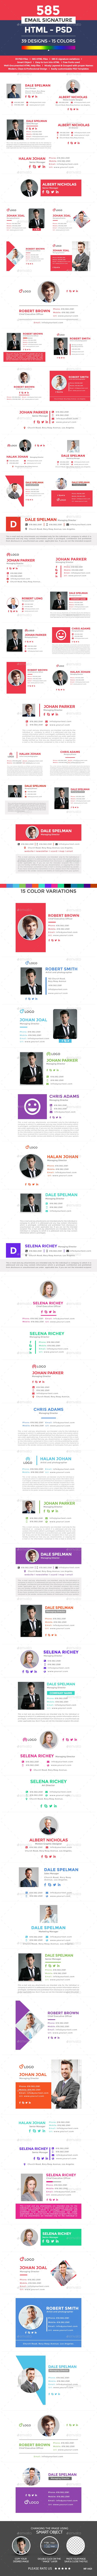 Flat & Modern Email Signatures - 585 HTML & PSD Files  - #Miscellaneous #Web #Elements Download here:  https://graphicriver.net/item/flat-modern-email-signatures-585-html-psd-files-/17359852?ref=alena994